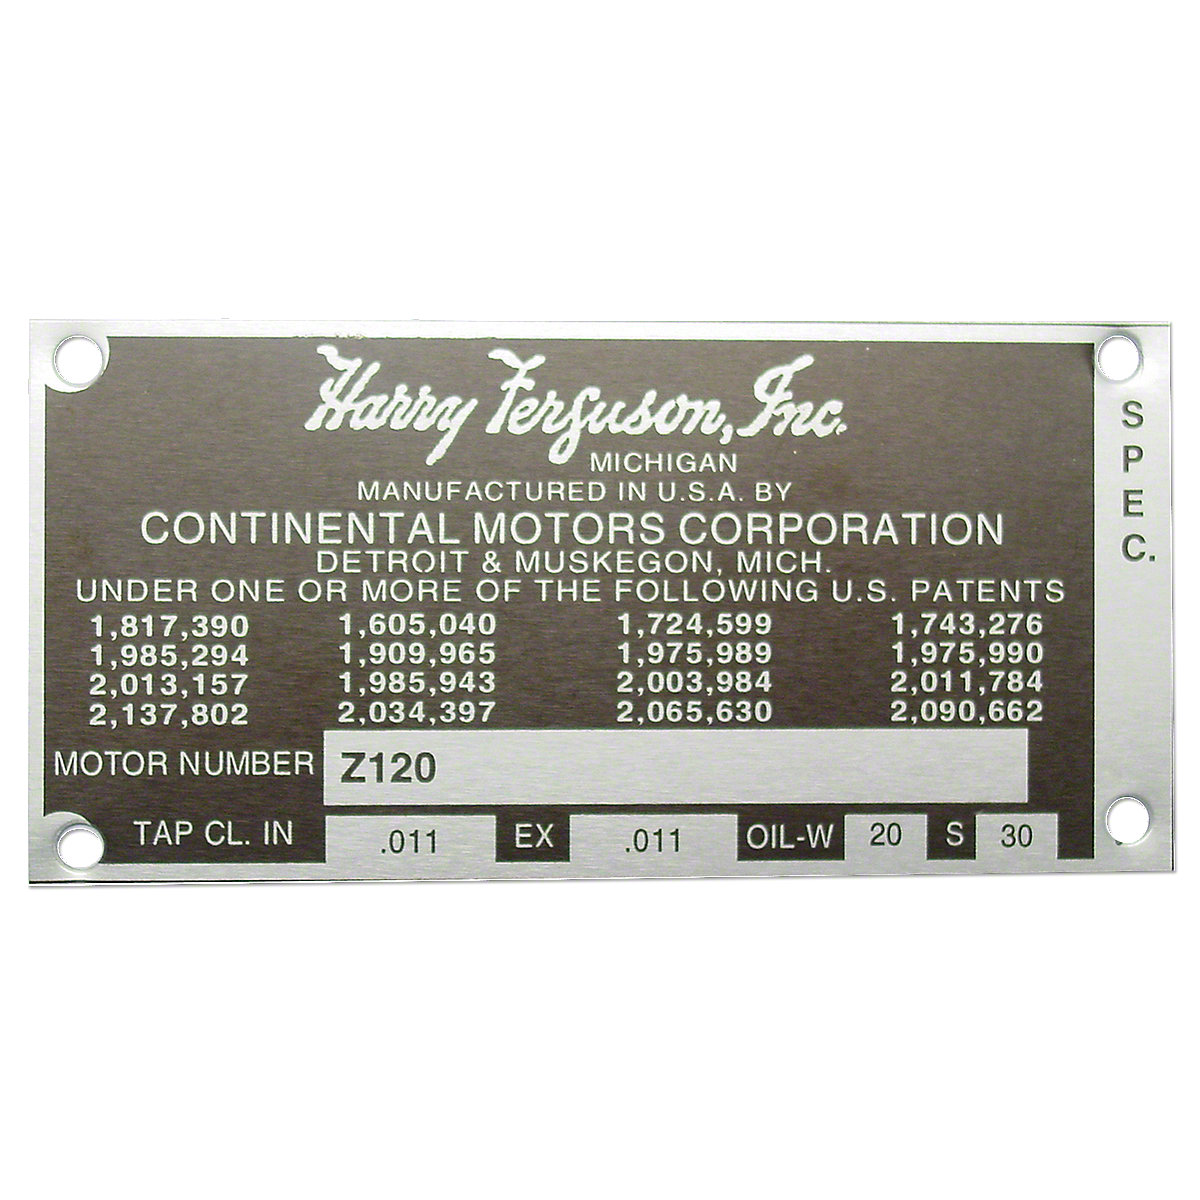 Engine Serial Number Tag With Rivets For Massey Ferguson: TE20, TO20.